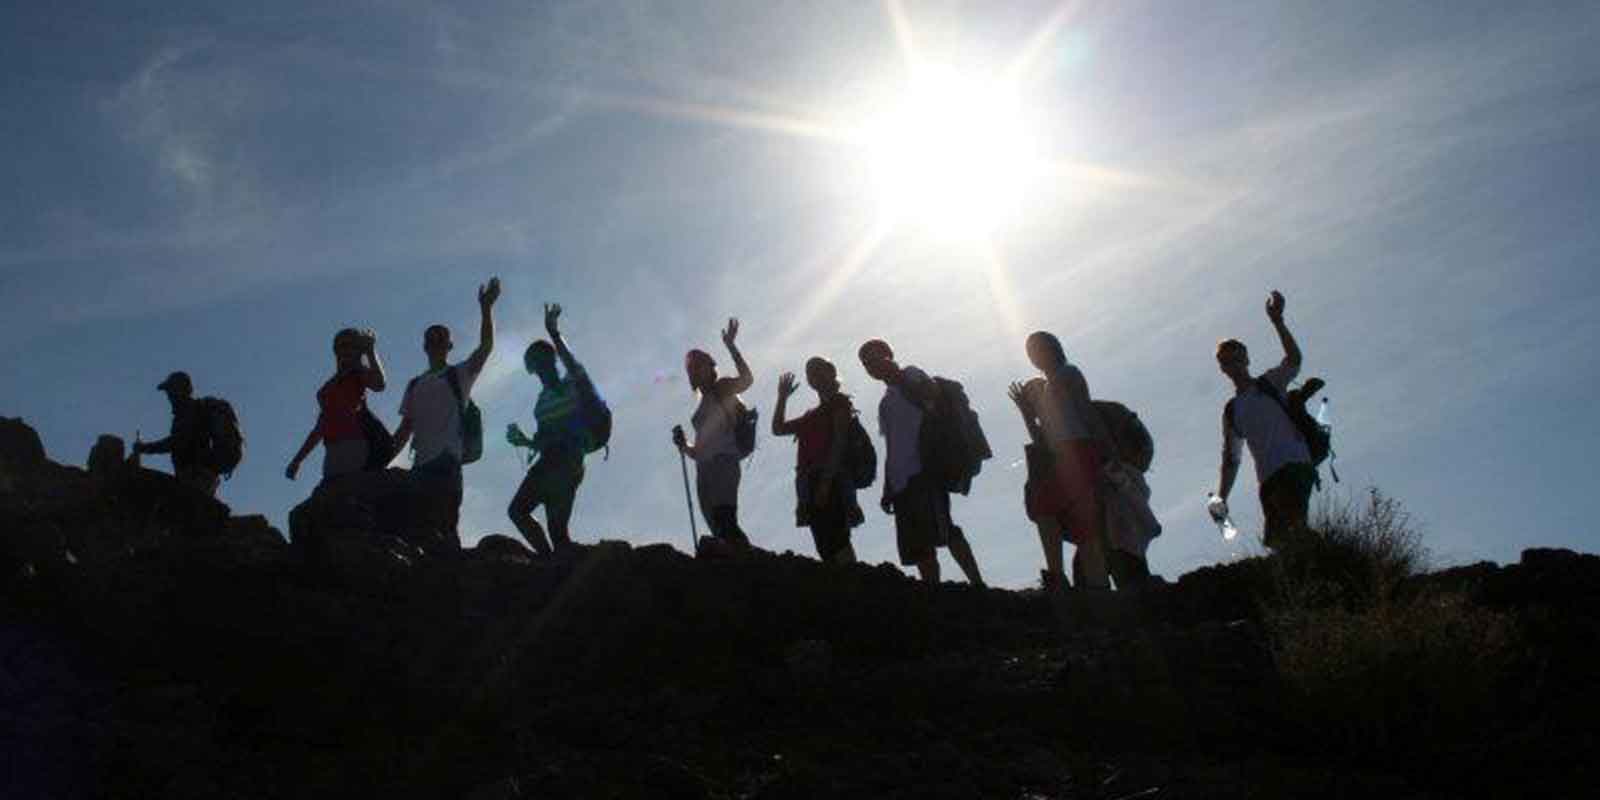 School group trekking with bright sun in background